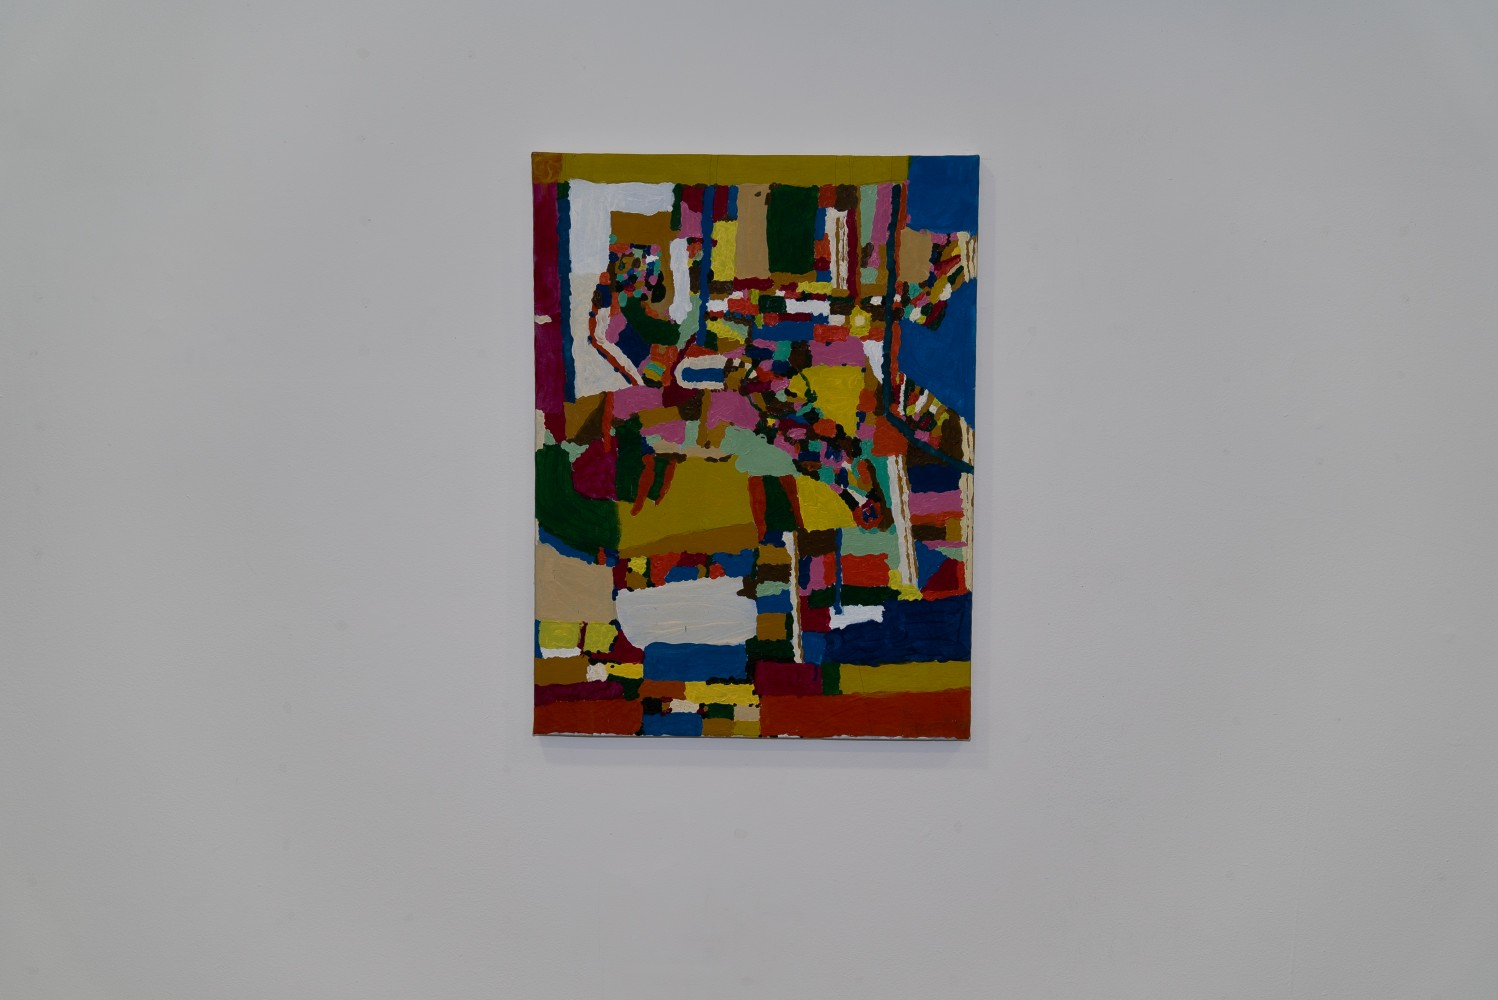 This is an image of a painting on paper centred on a white wall. The painting is made up of very colourful patches of acrylic paint that are part abstract and part form a figure seated almost in profile in an interior space.